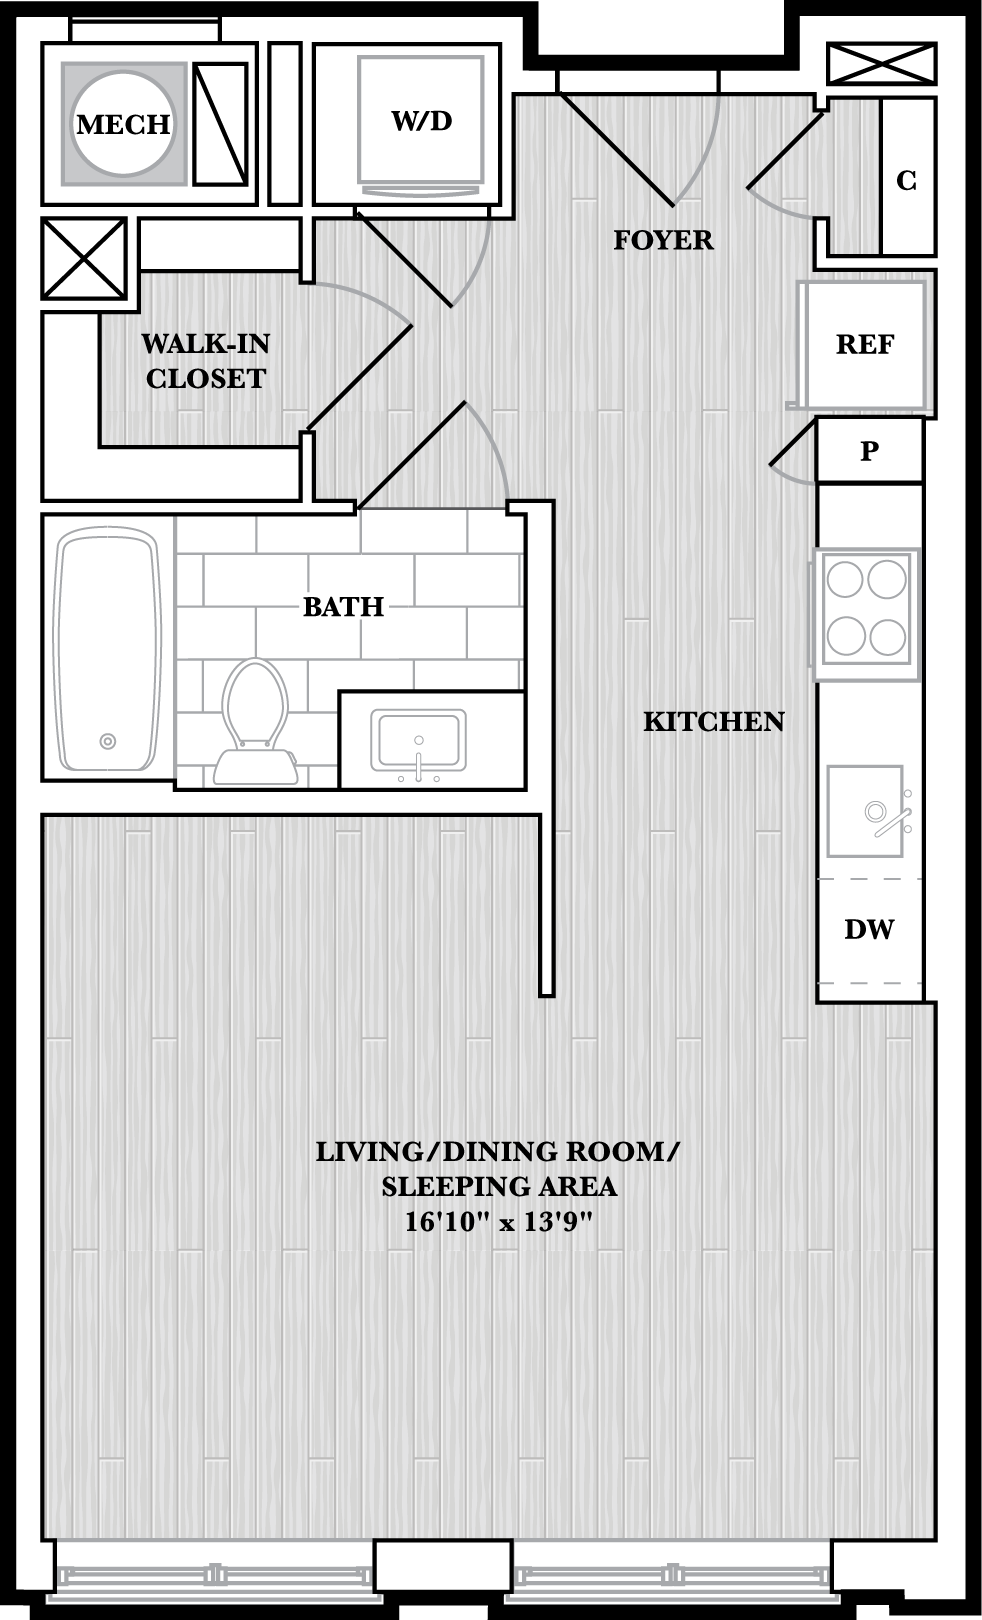 floorplan image of N327